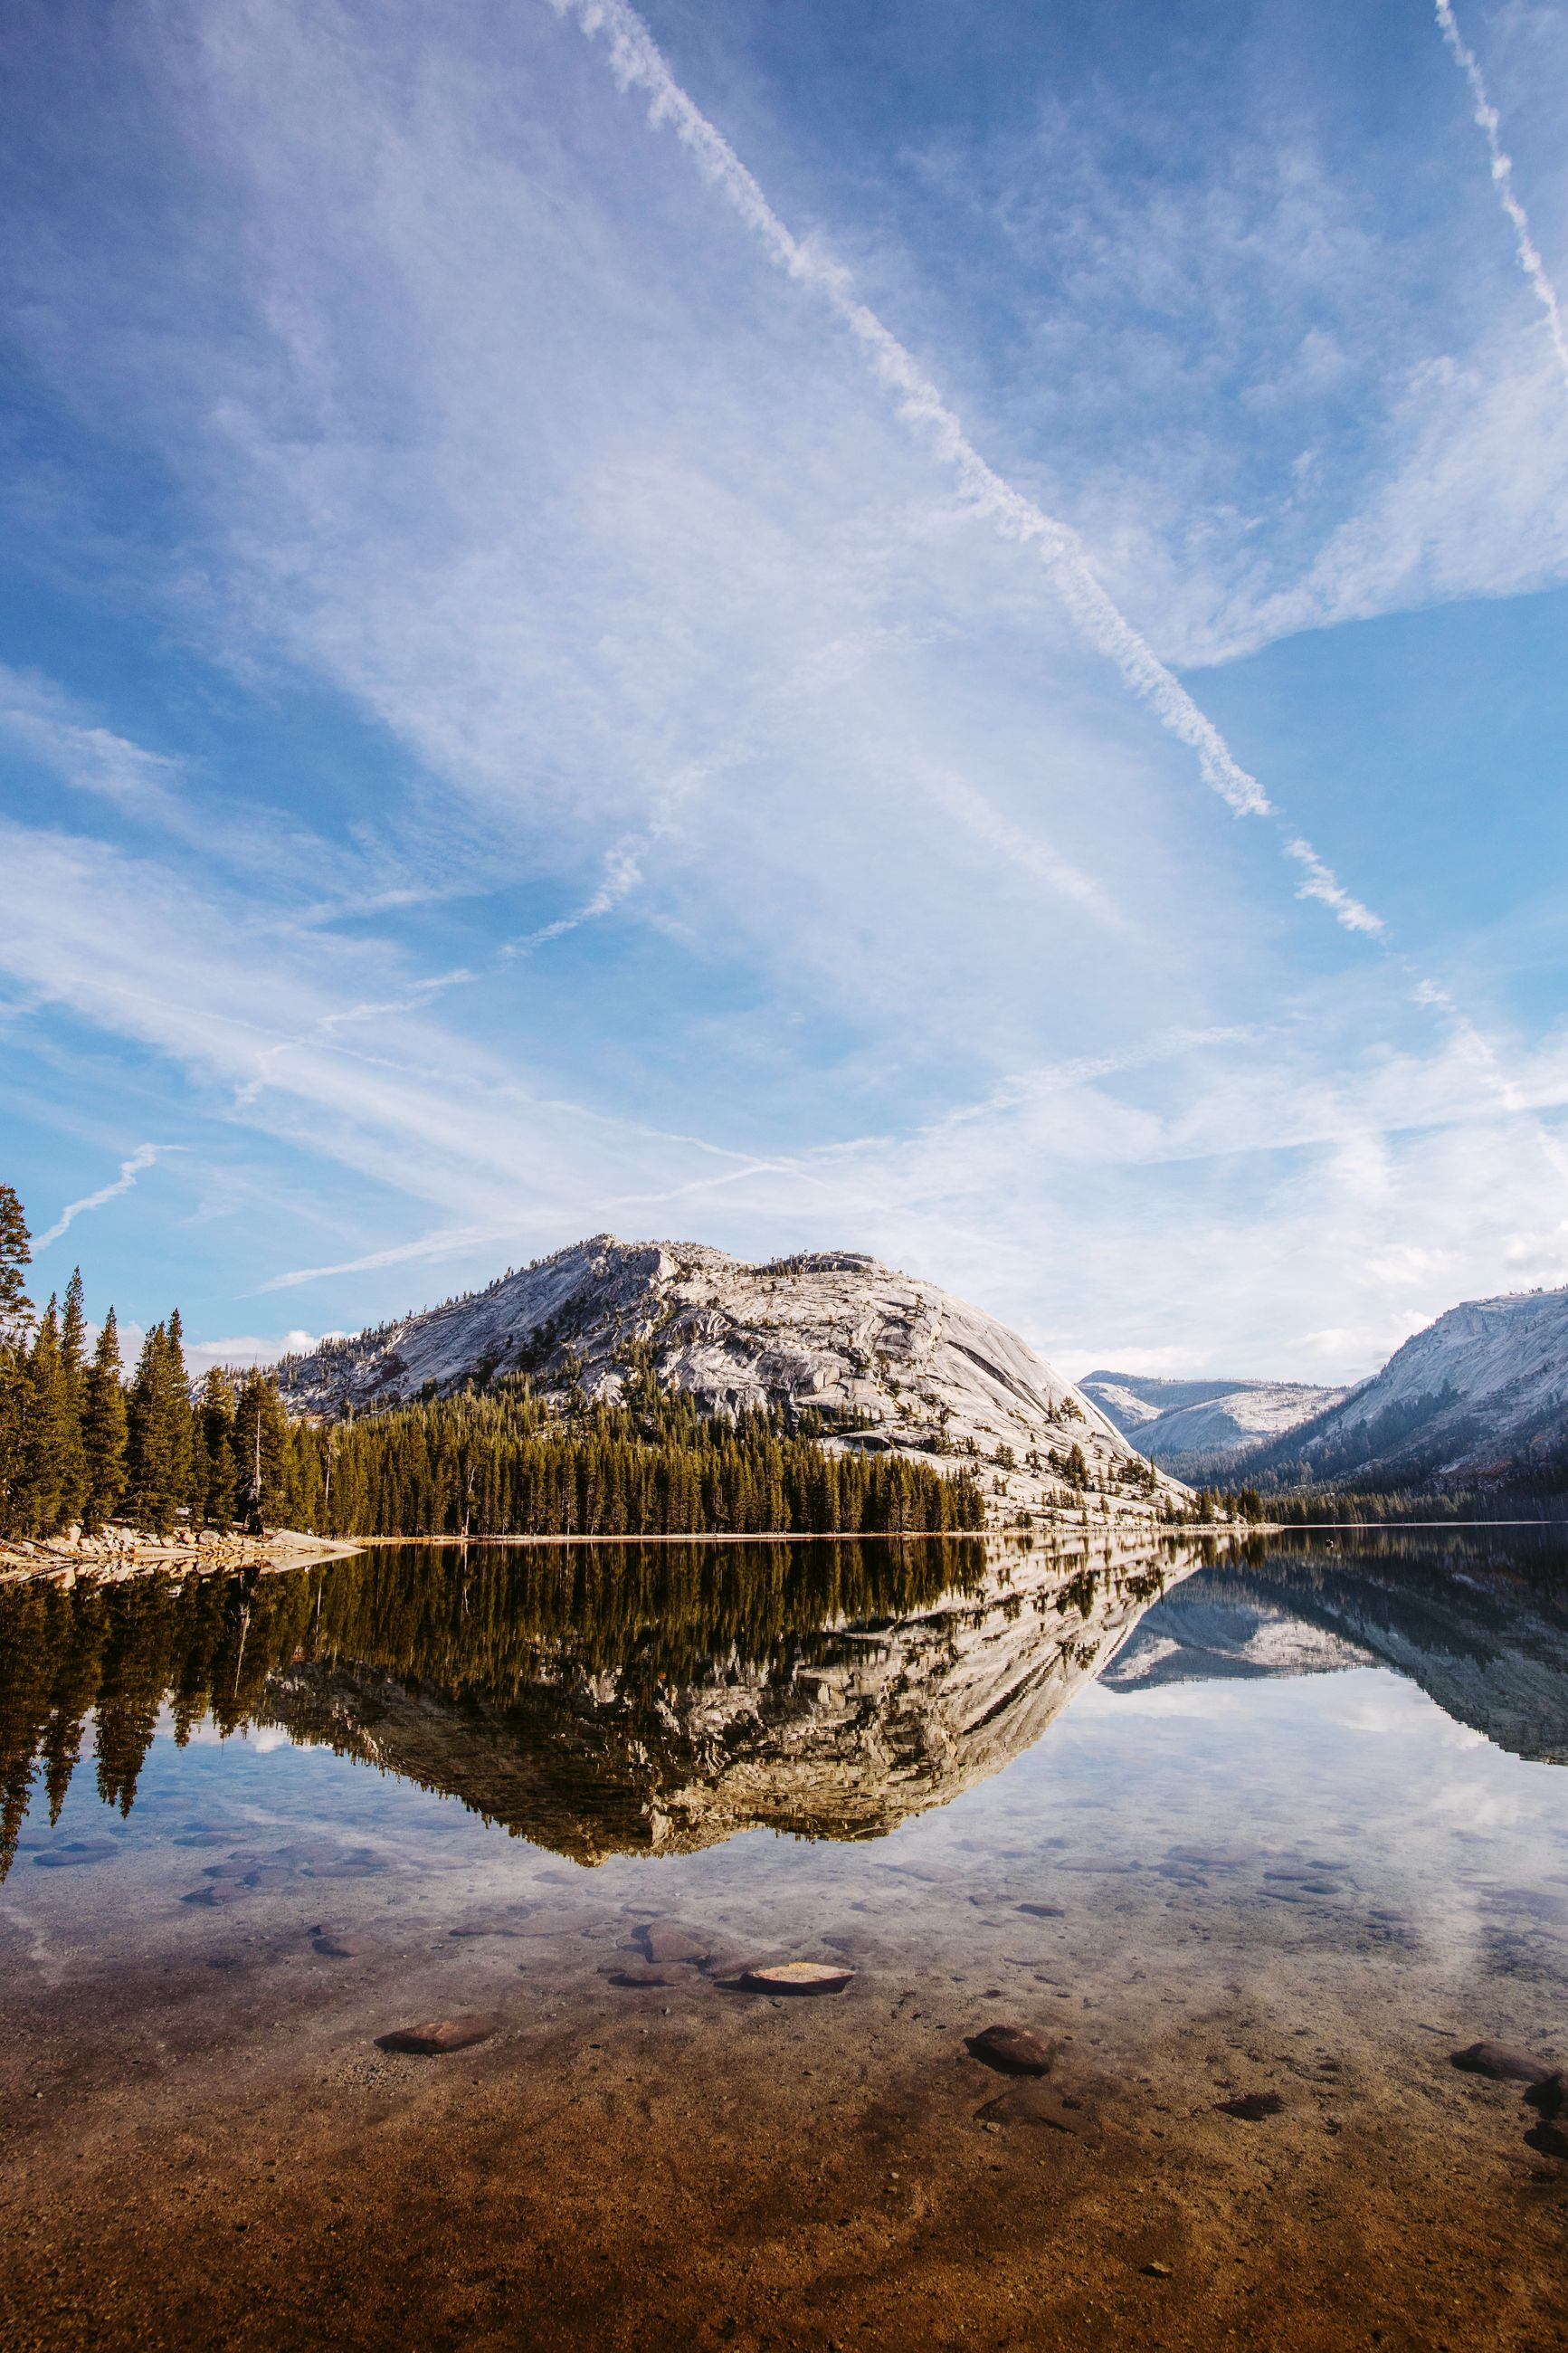 water, reflection, lake, sky, mountain, beauty in nature, scenics - nature, cloud - sky, tranquility, tranquil scene, non-urban scene, no people, nature, mountain range, day, rock, idyllic, rock - object, environment, outdoors, vapor trail